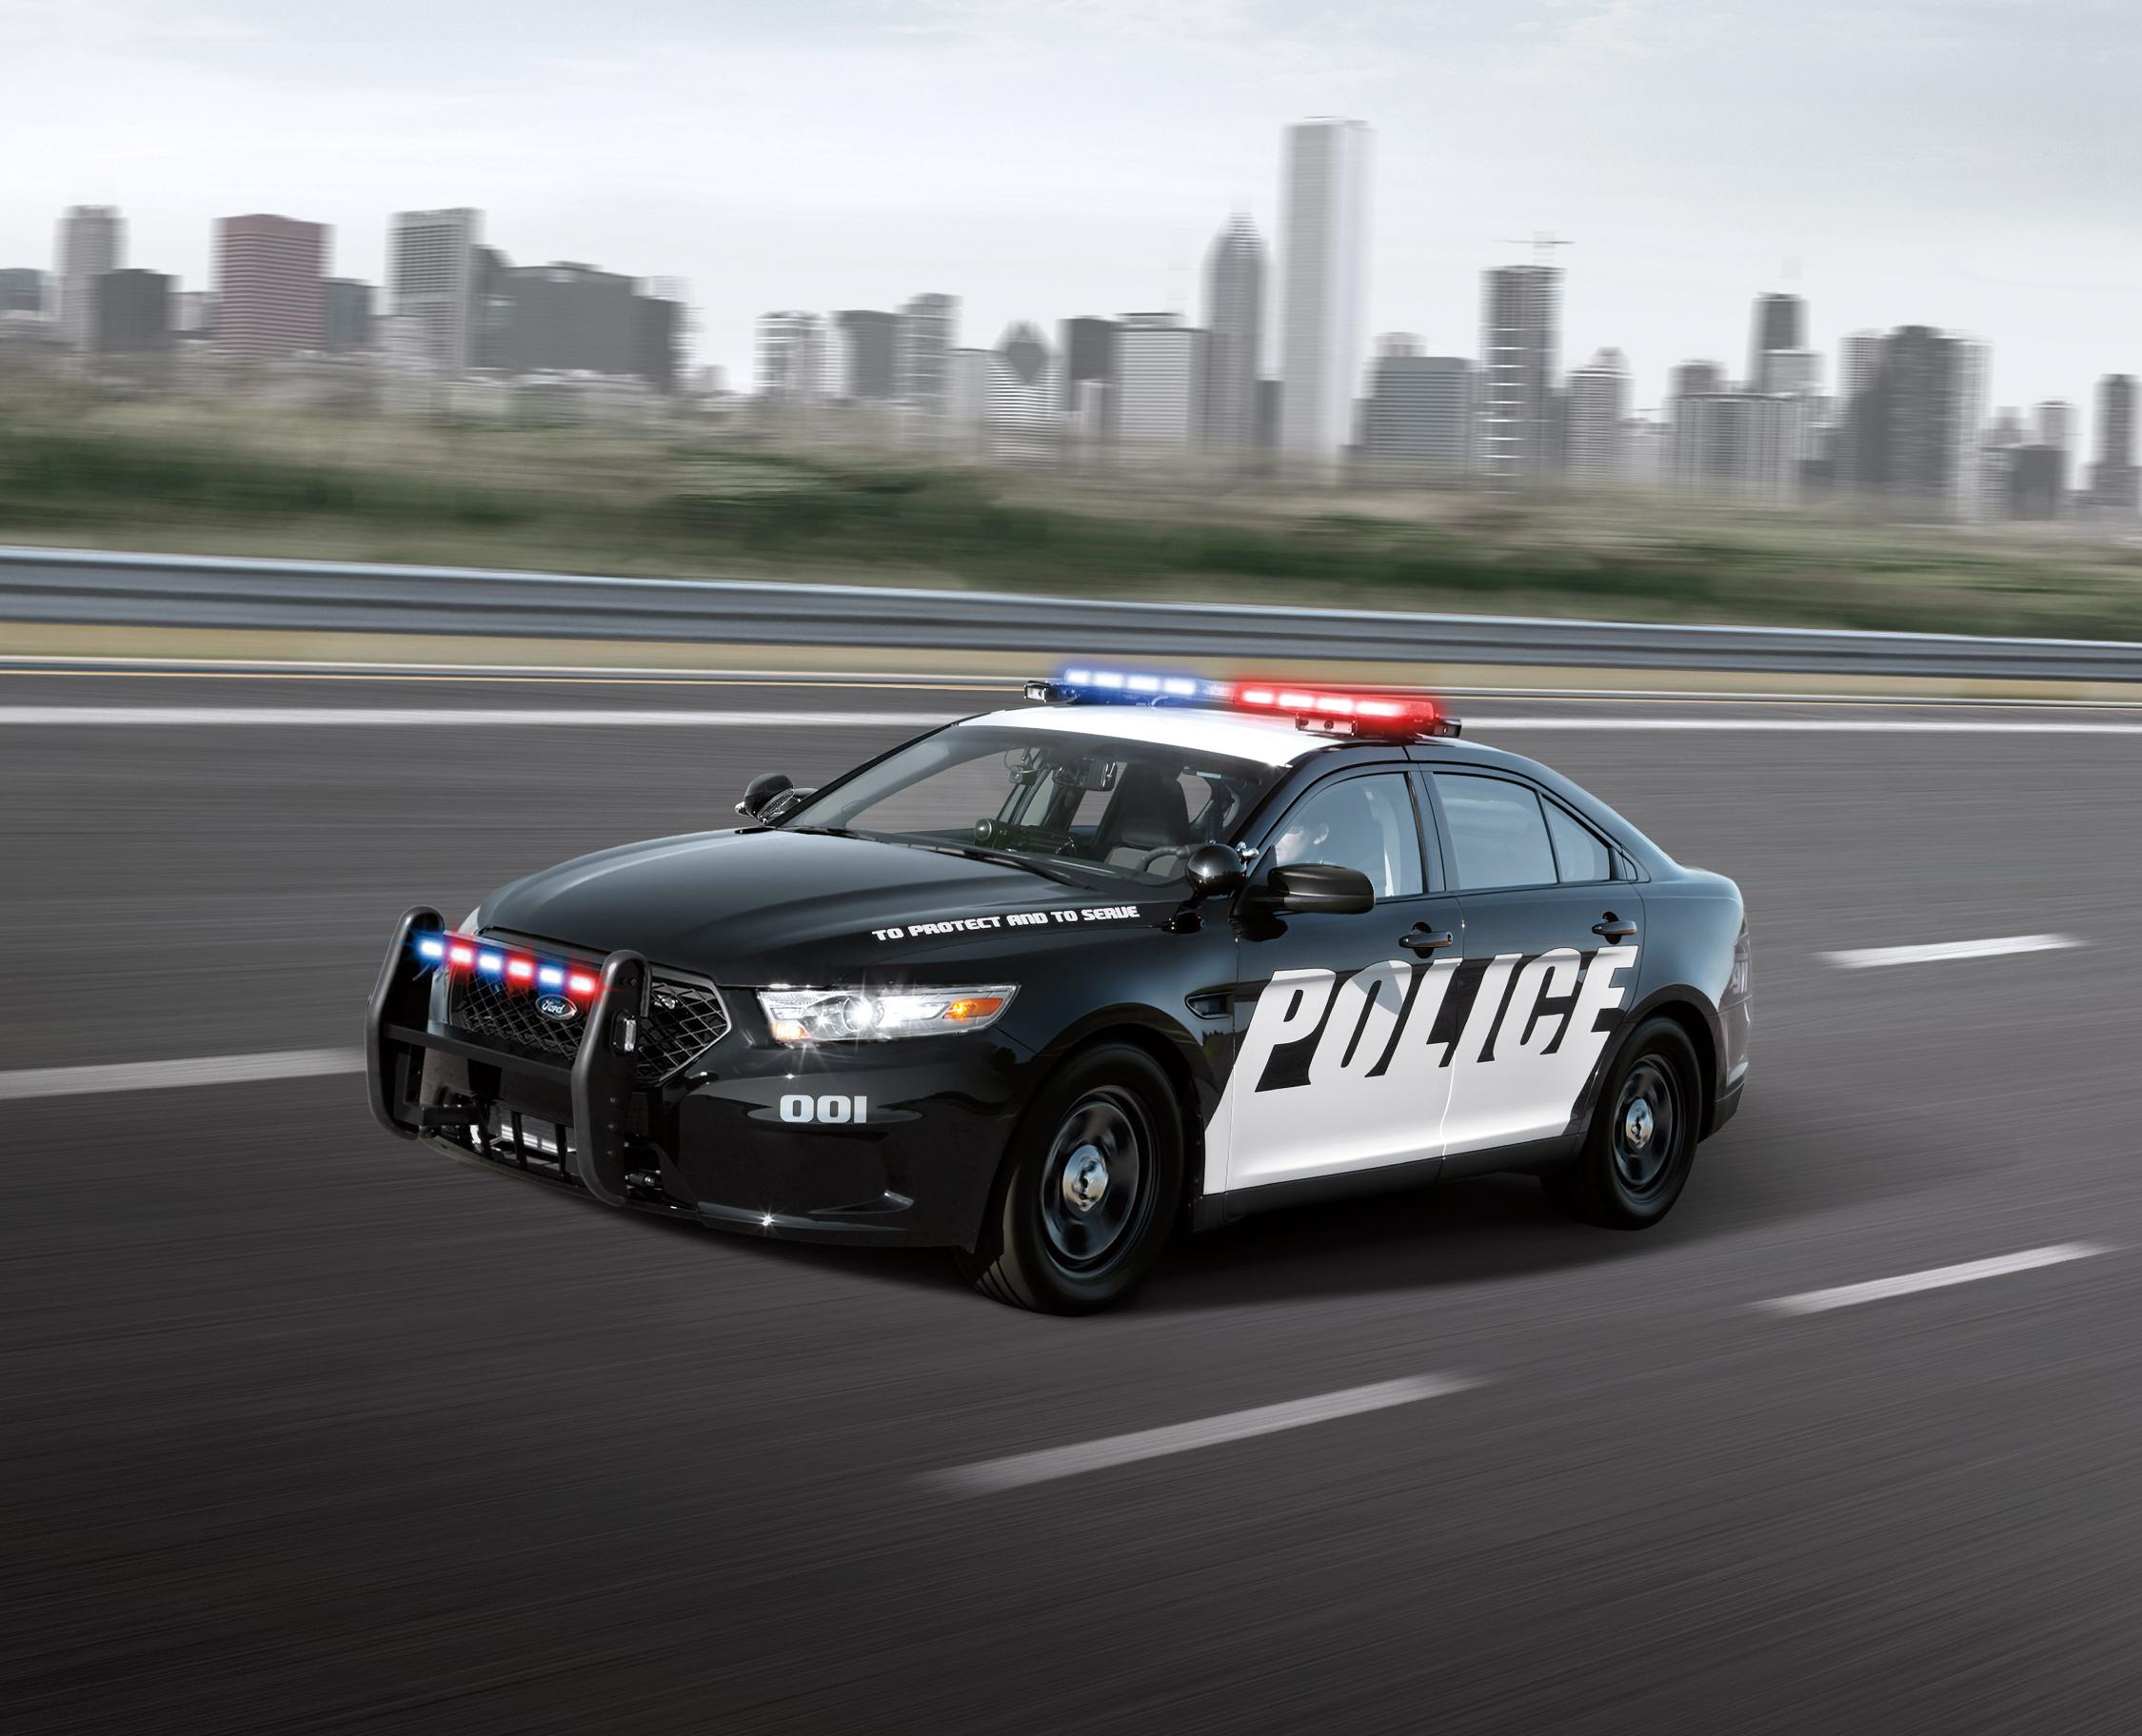 Police Officer Wallpaper Hd 2015 Ford Police Interceptor Heralded As The Quickest